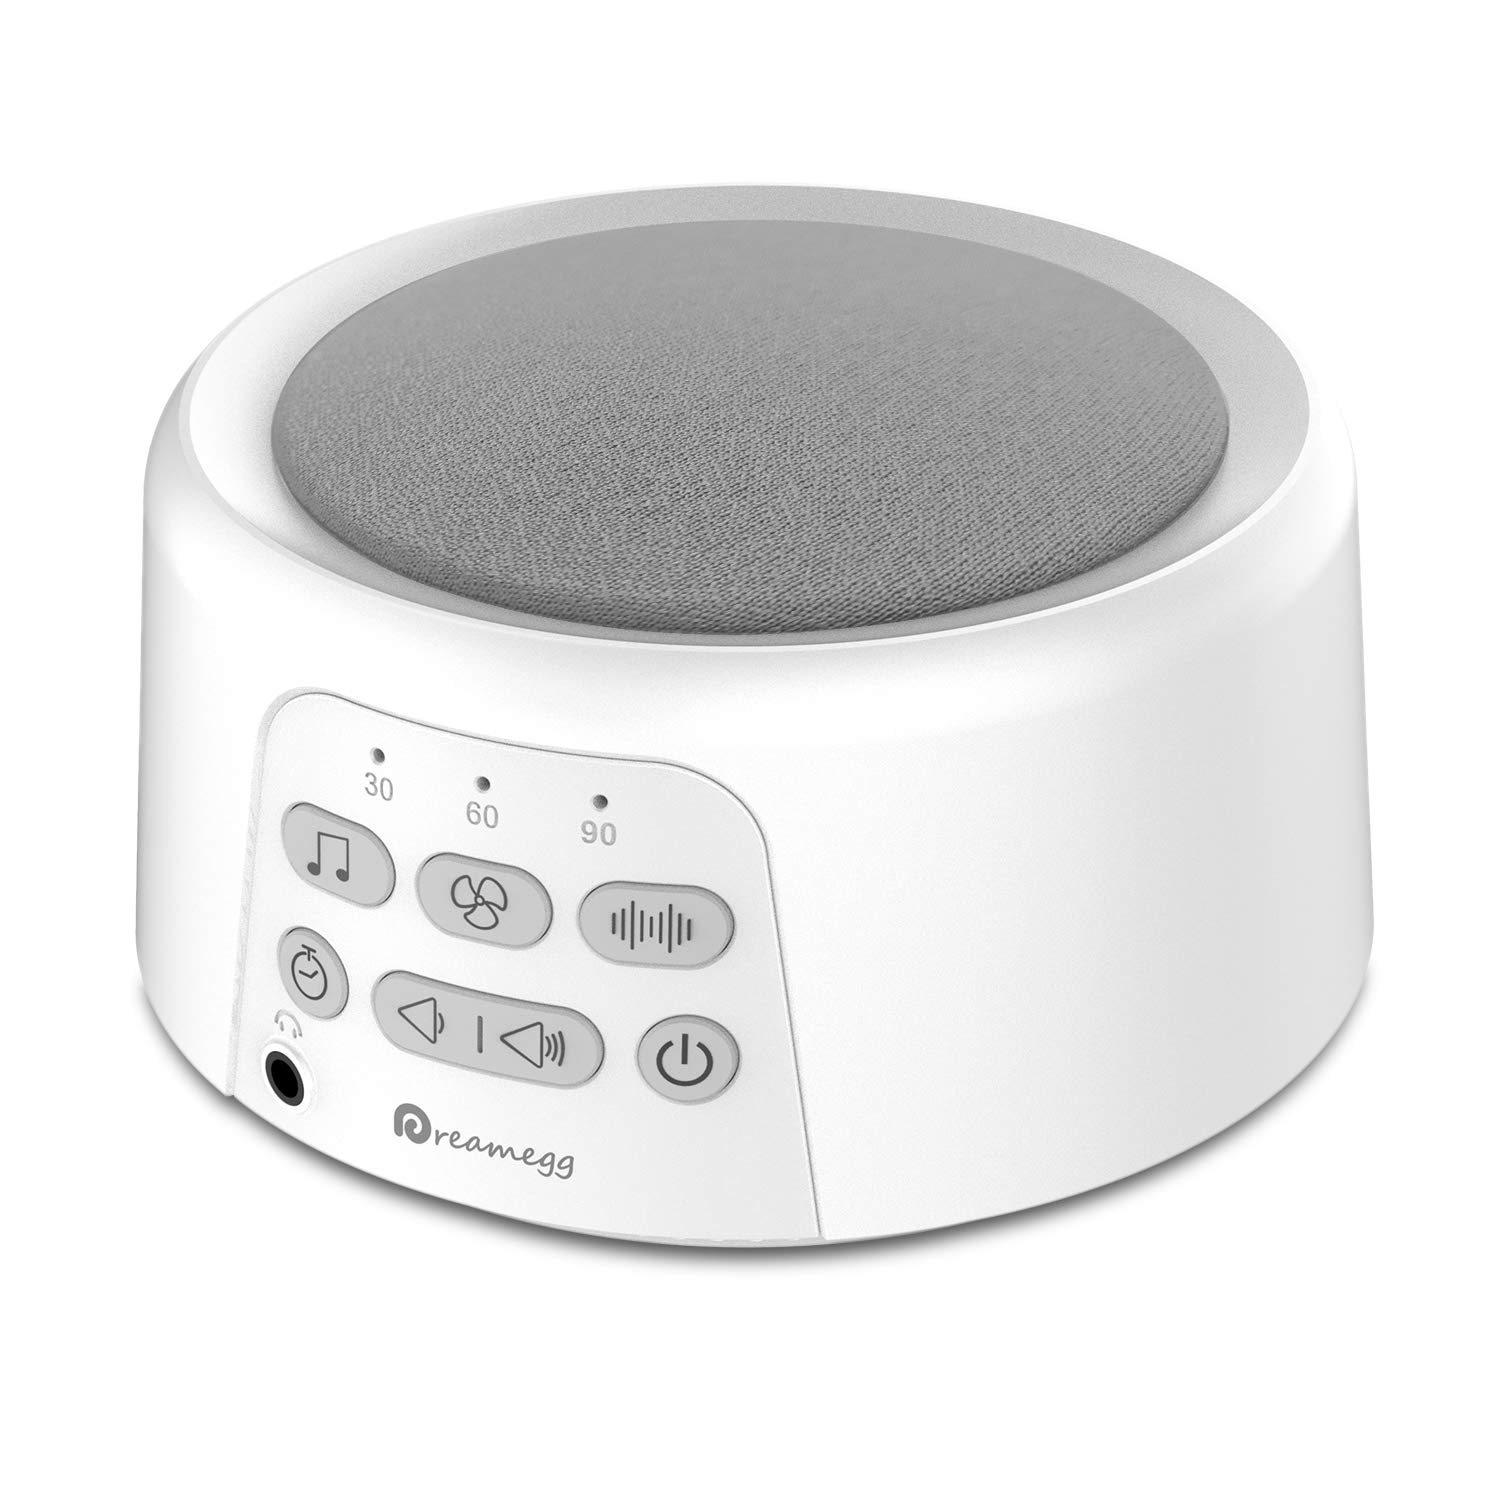 Dreamegg D3 White Noise Machine - Rechargeable Sound Machines for Sleeping, 24 Non-Looping HiFi Sounds, Continuous or Timer, Portable Sleep Machines for Baby Adults Travel Office Privacy (White) by Dreamegg